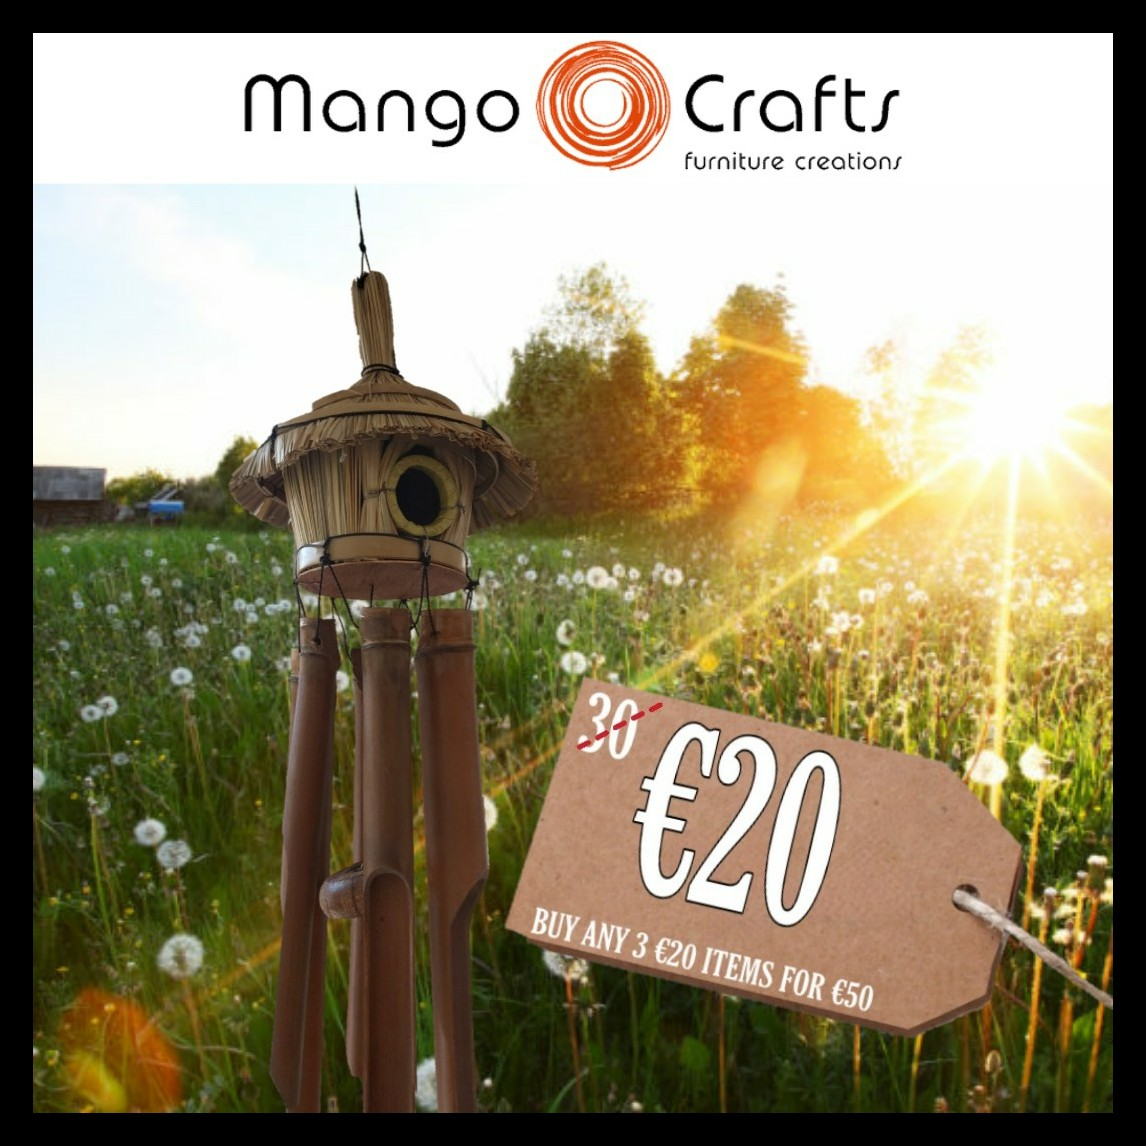 The good weather is coming in againwhat better way to welcome it than a Mango Crafts windchime?    #mangofurniturecreations #mangocrafts #windchime #sundaymornings #sundayfunday #onlineshopping #ireland #irish #birdhouse #coconut #sundayvibes #smallbusiness